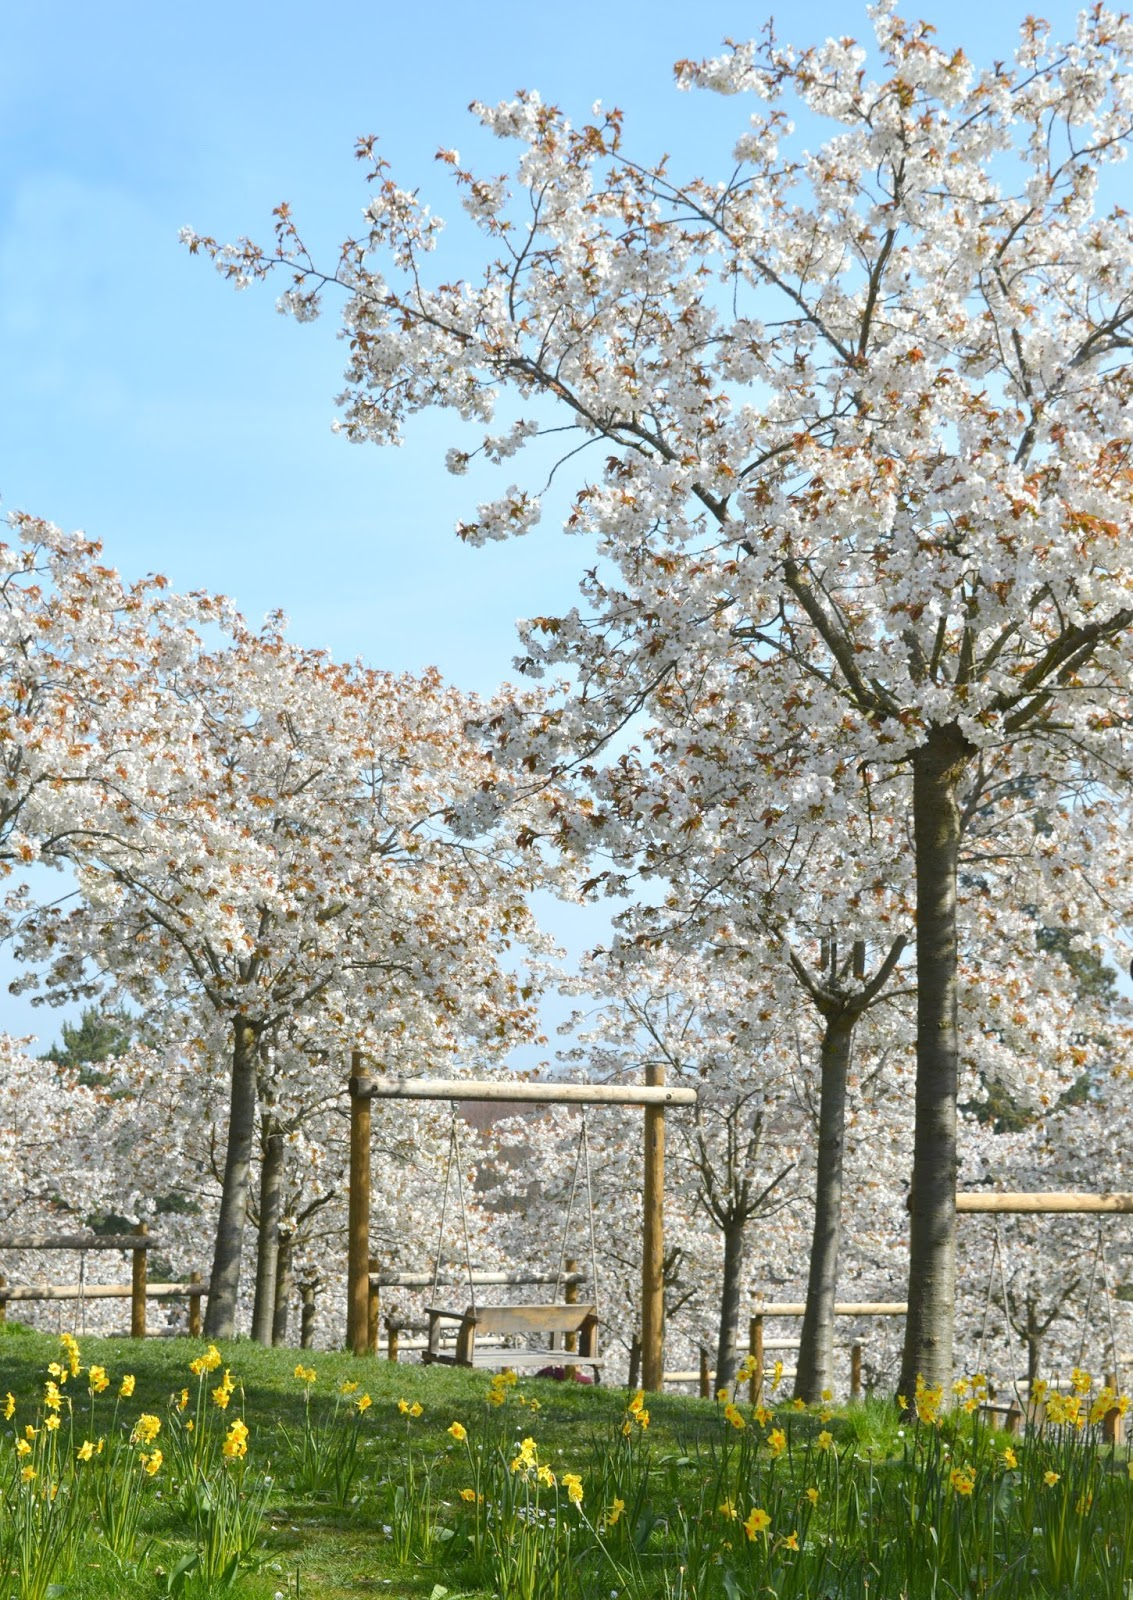 Cherry Blossom Trees at Alnwick Garden